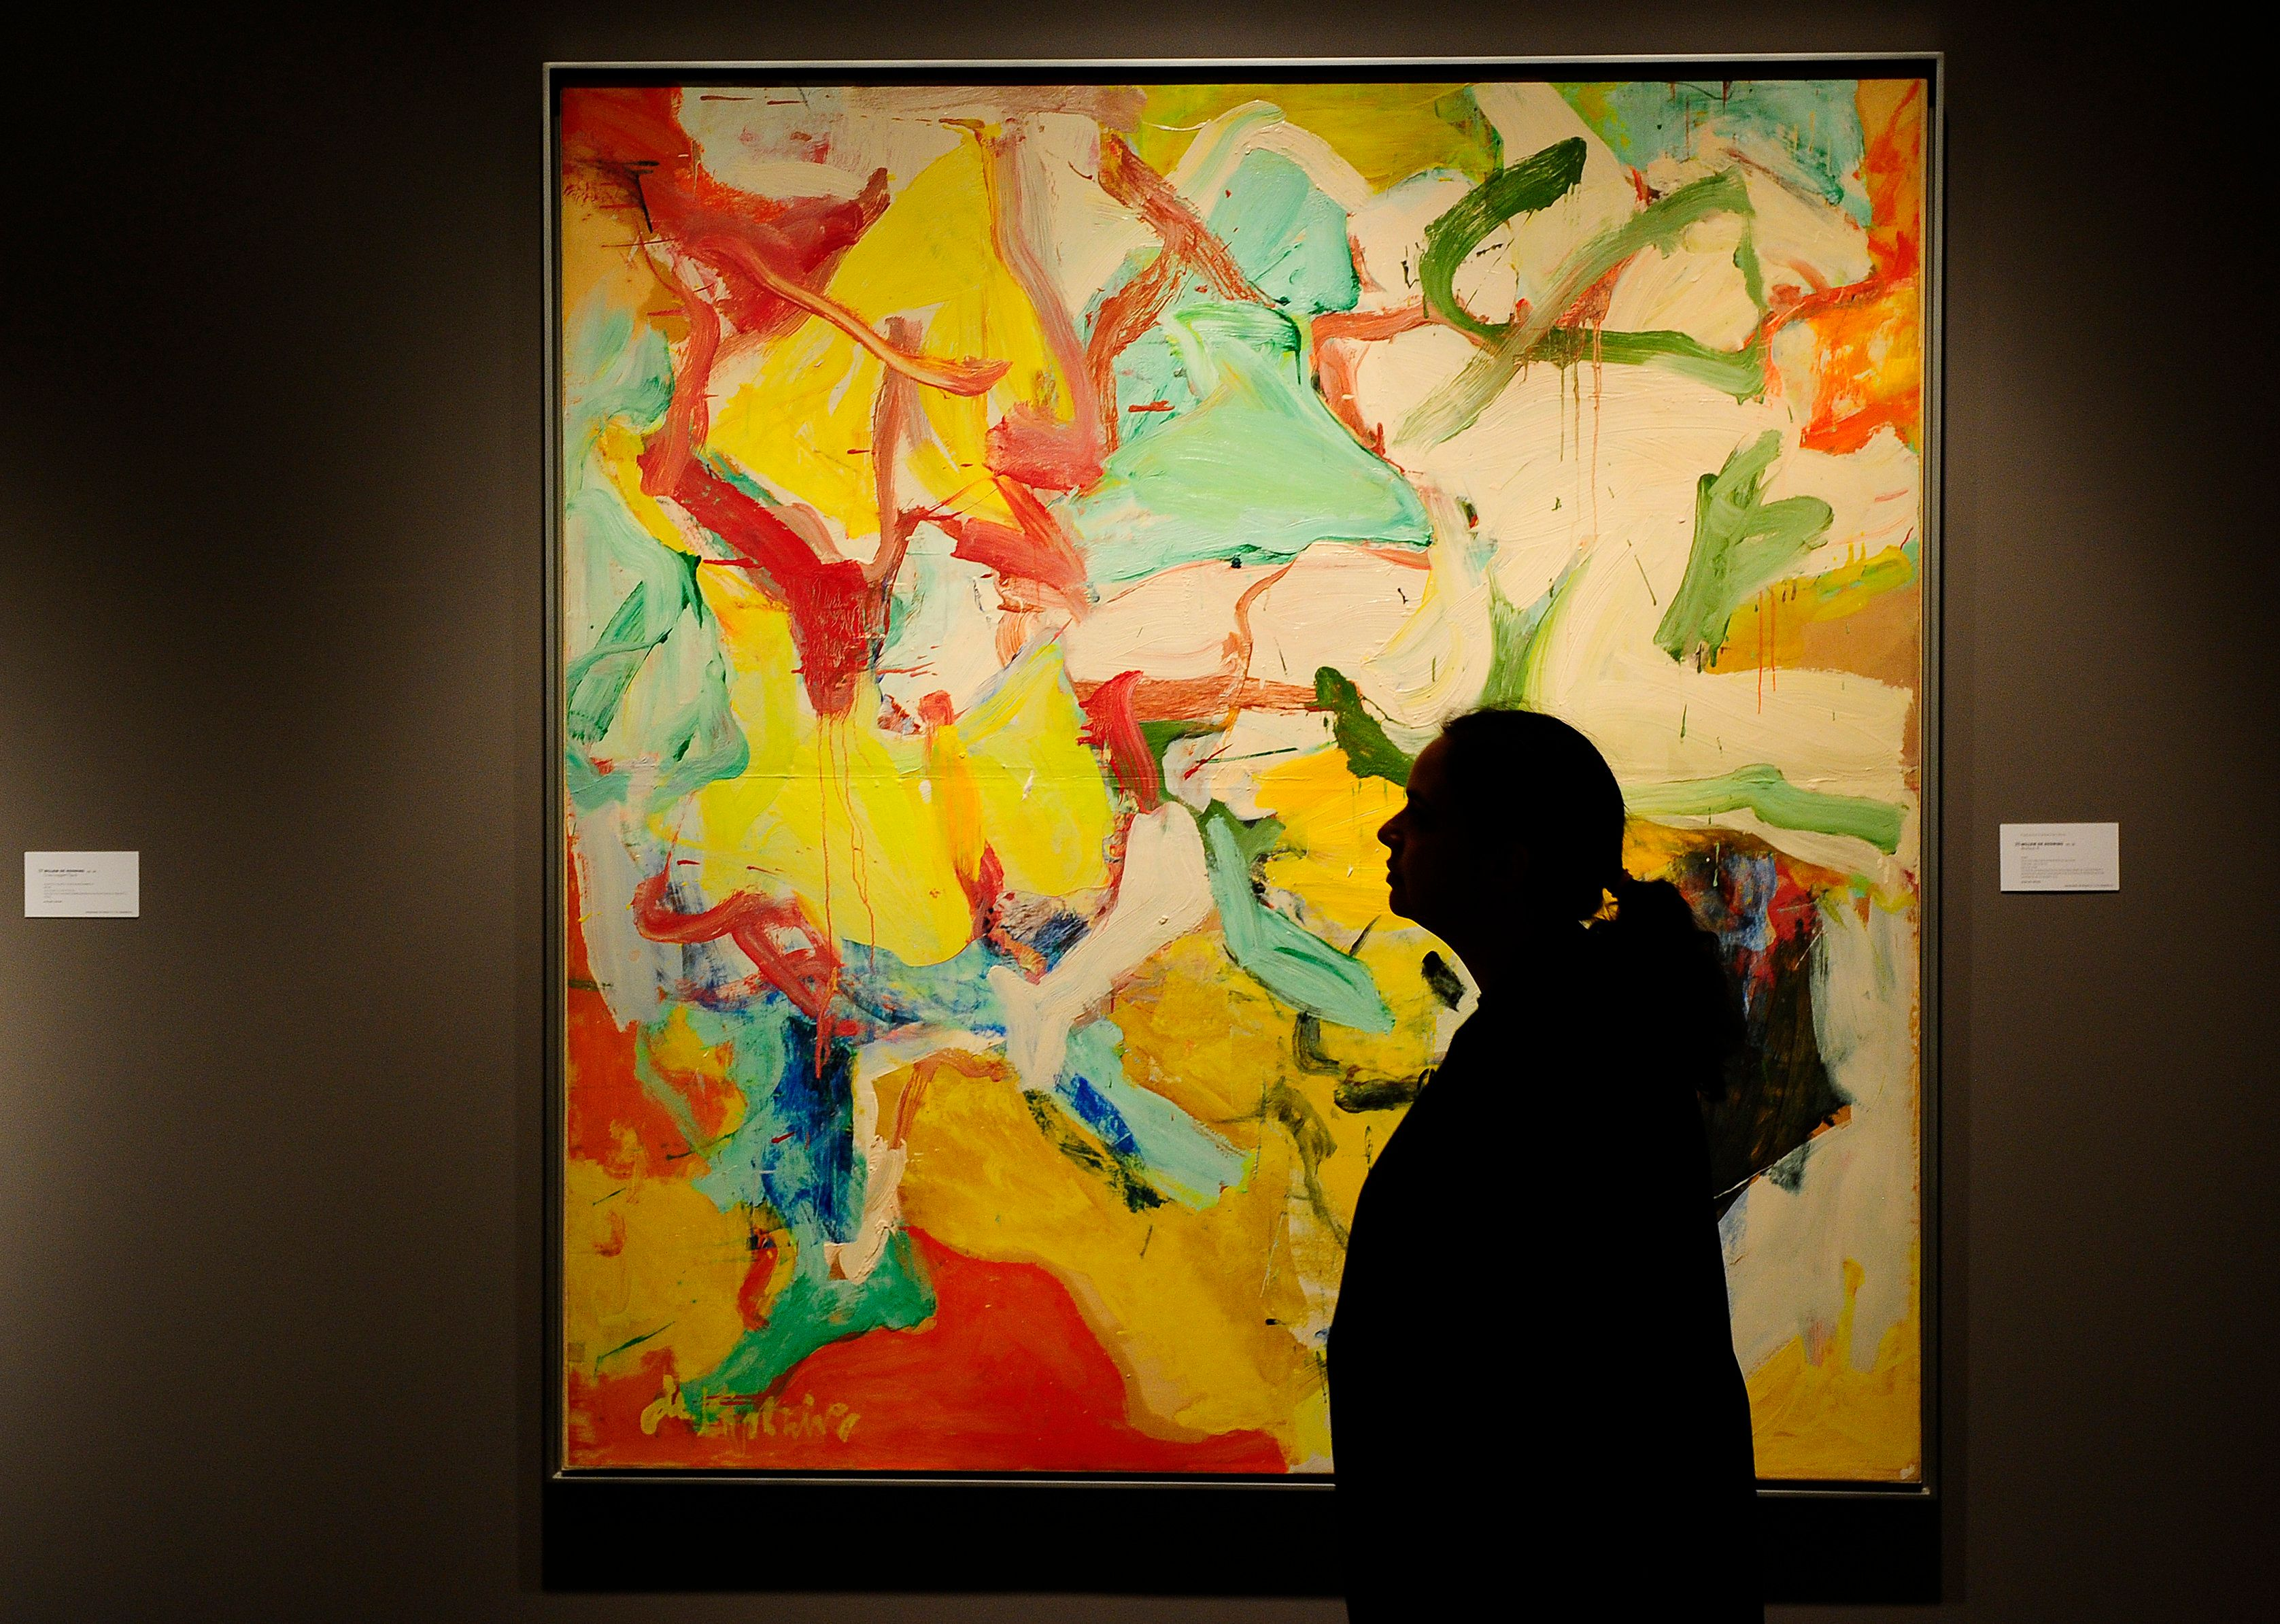 'Montauk II' by Willem de Kooning is on display during a press preview of Sotheby's Contemporary Art Autumn sale in New York, October 29, 2010. Sotheby's will hold its Contemporary Art sale on November 9, 2010. AFP PHOTO/Emmanuel Dunand (Photo credit should read EMMANUEL DUNAND/AFP/Getty Images)